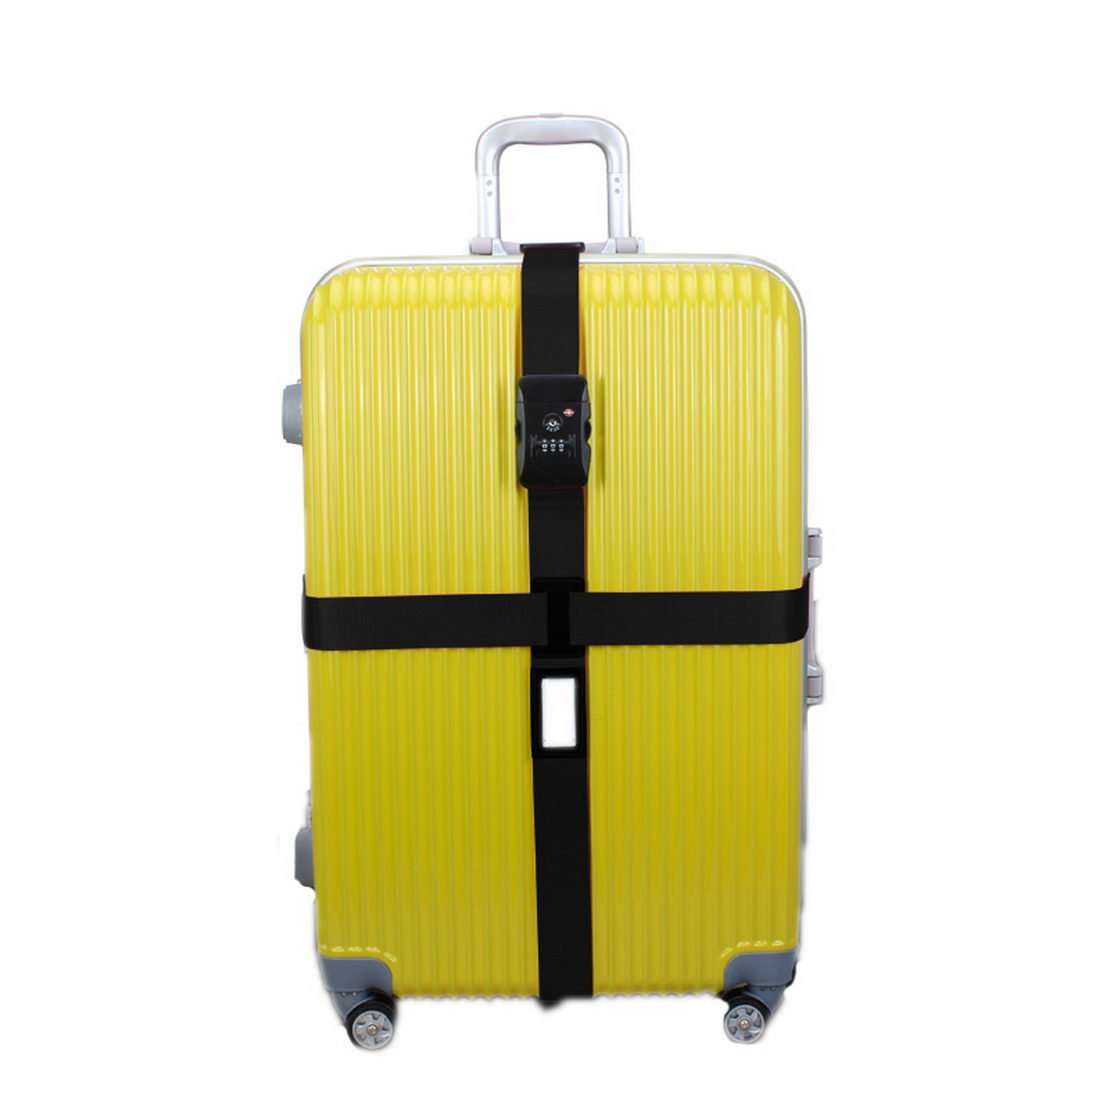 donfohy Travel longer tied me with luggage belt tied cross silicone packing tape tied with reinforcement travel